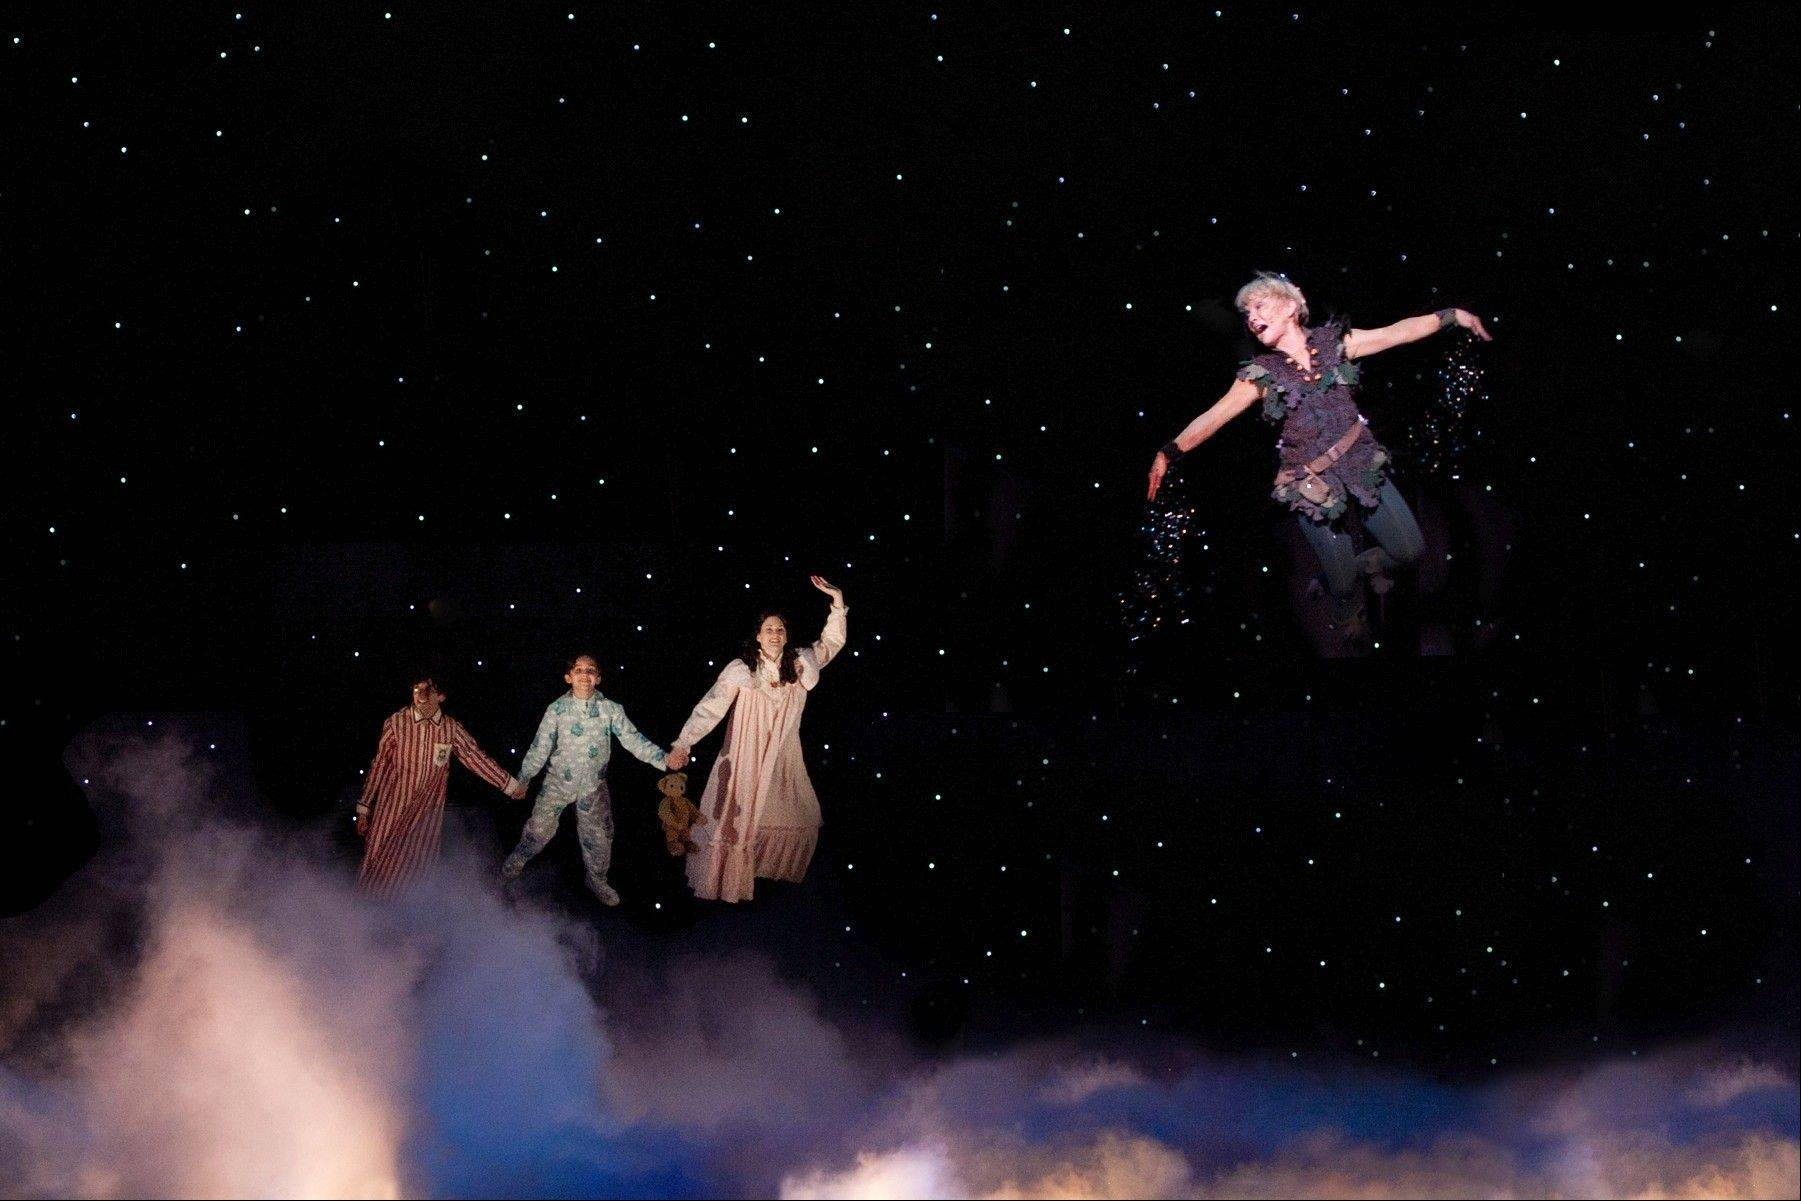 "Peter Pan (Cathy Rigby, right) leads the Darling children John, Michael and Wendy (Lexy Baeza, Hadley Belle Miller and Krista Buccellato) to Neverland in the national tour of ""Peter Pan,"" now playing the Cadillac Palace Theatre in Chicago through Sunday, Feb. 10."